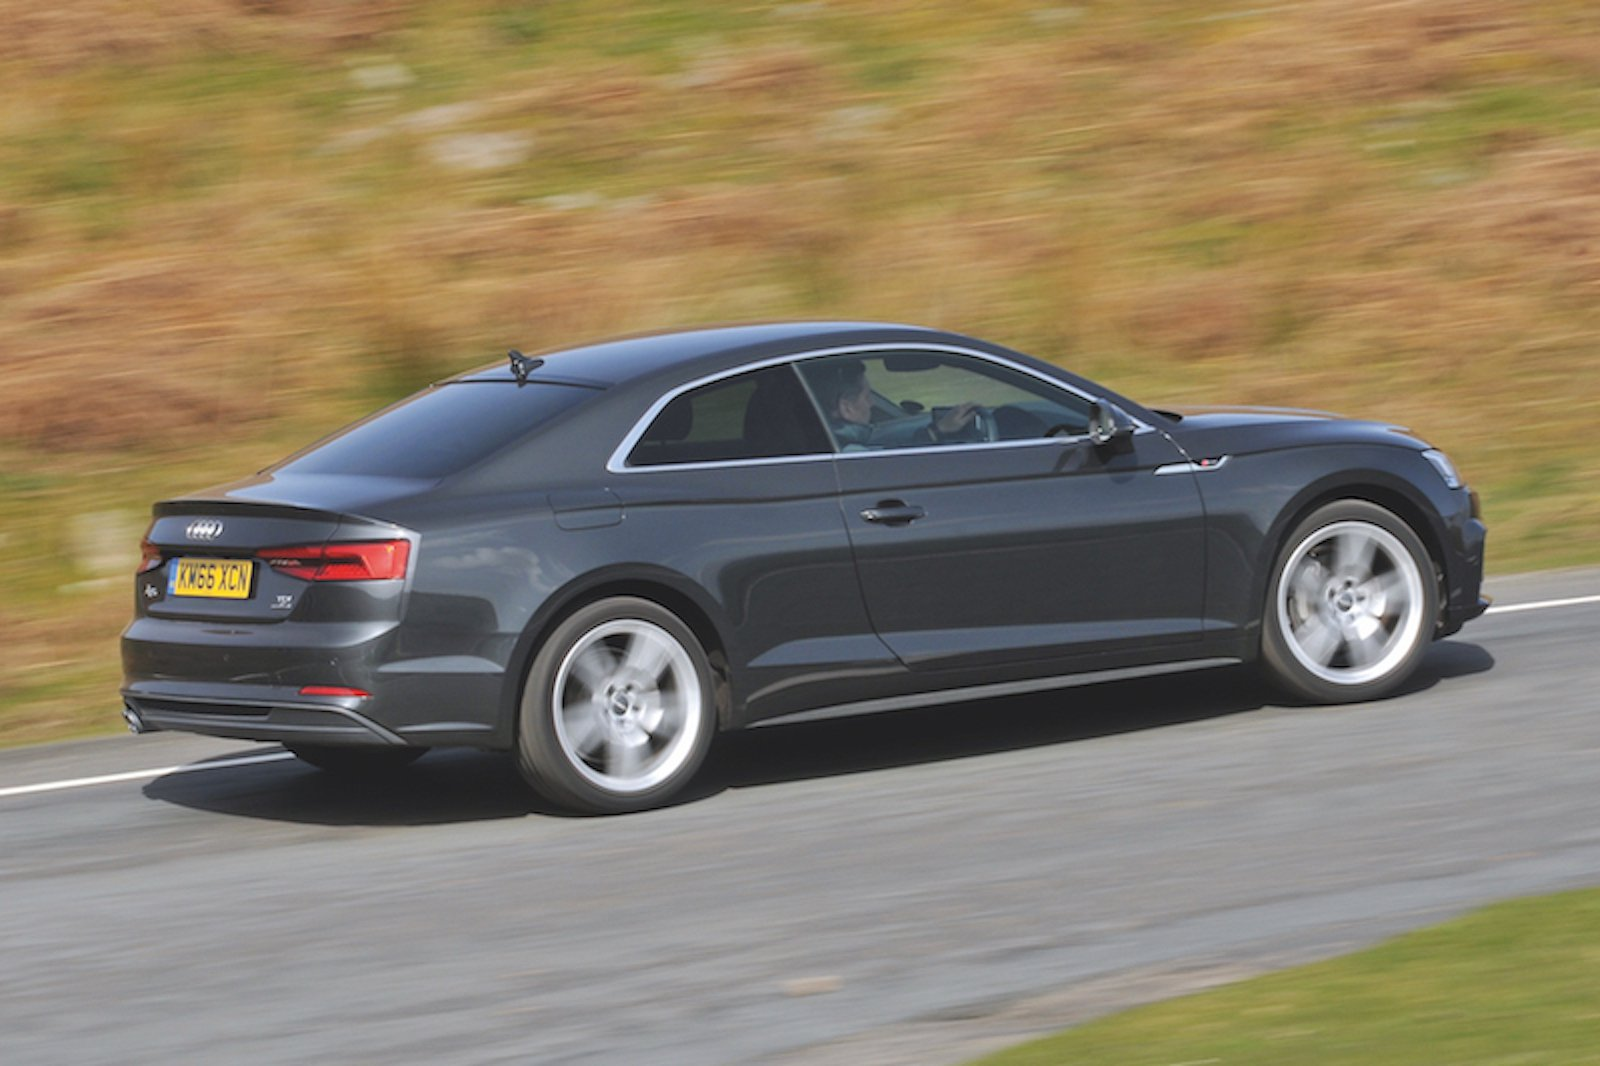 Used test: Audi A5 Coupe vs Mercedes-Benz E-Class Coupe